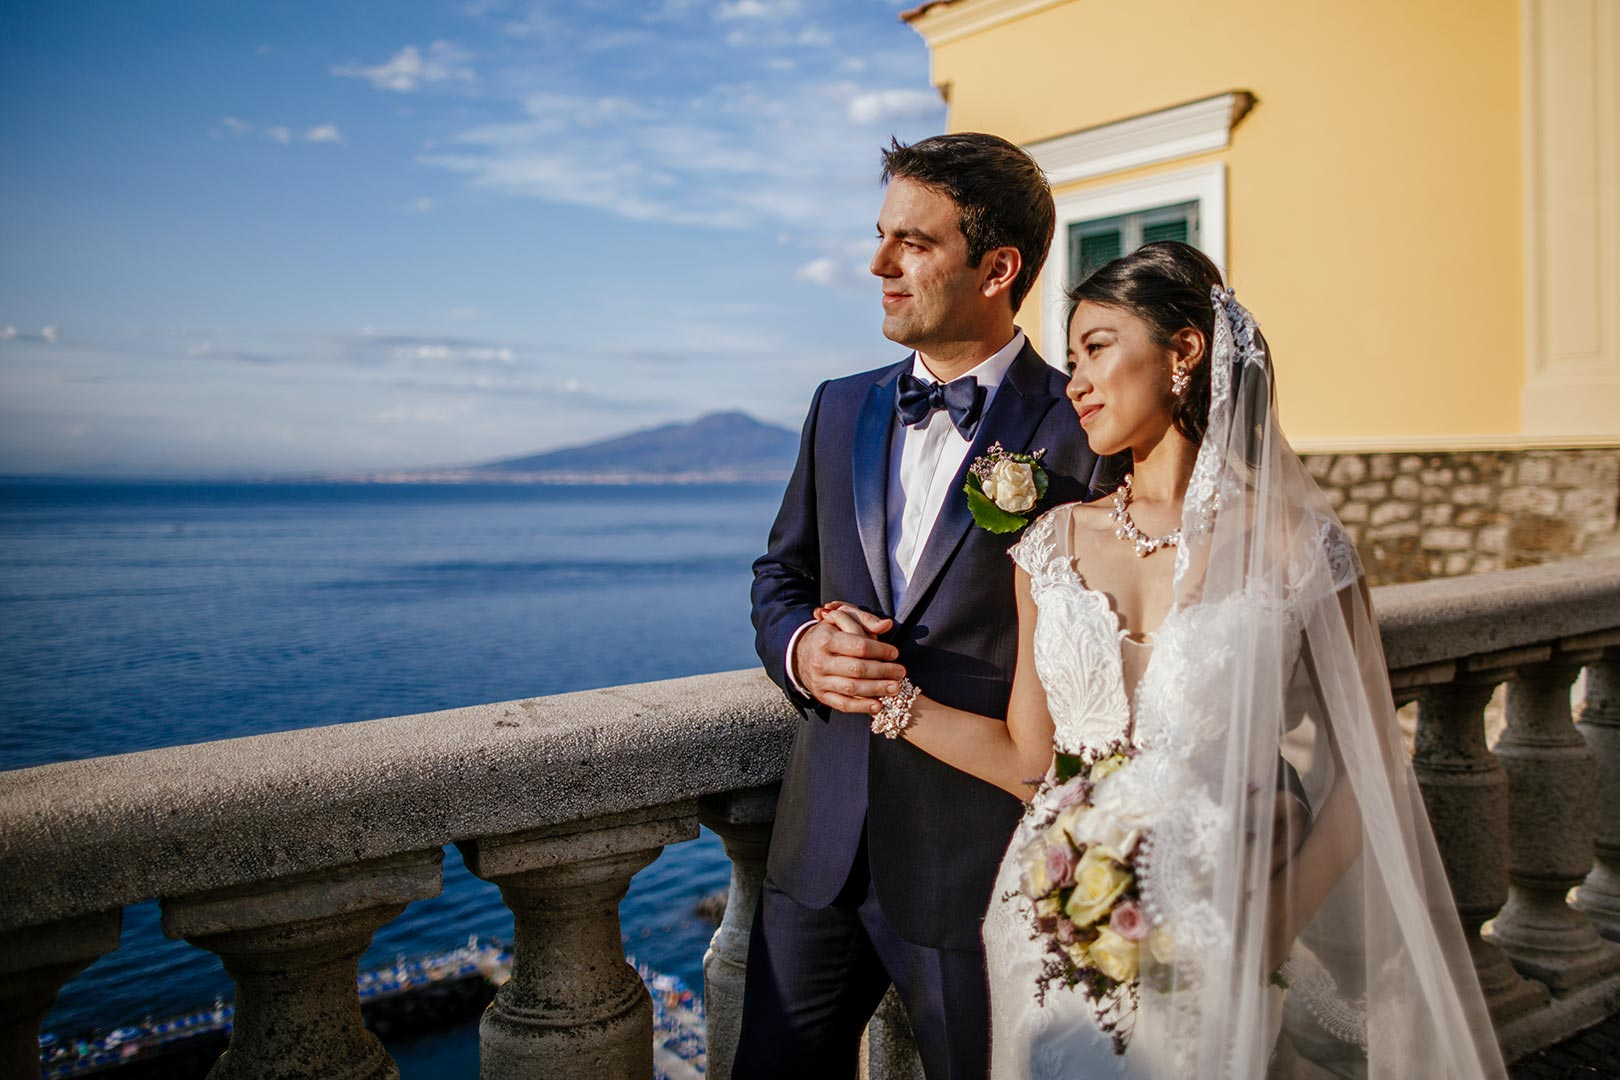 Wedding-at-Sorrento-Adele-Daniel